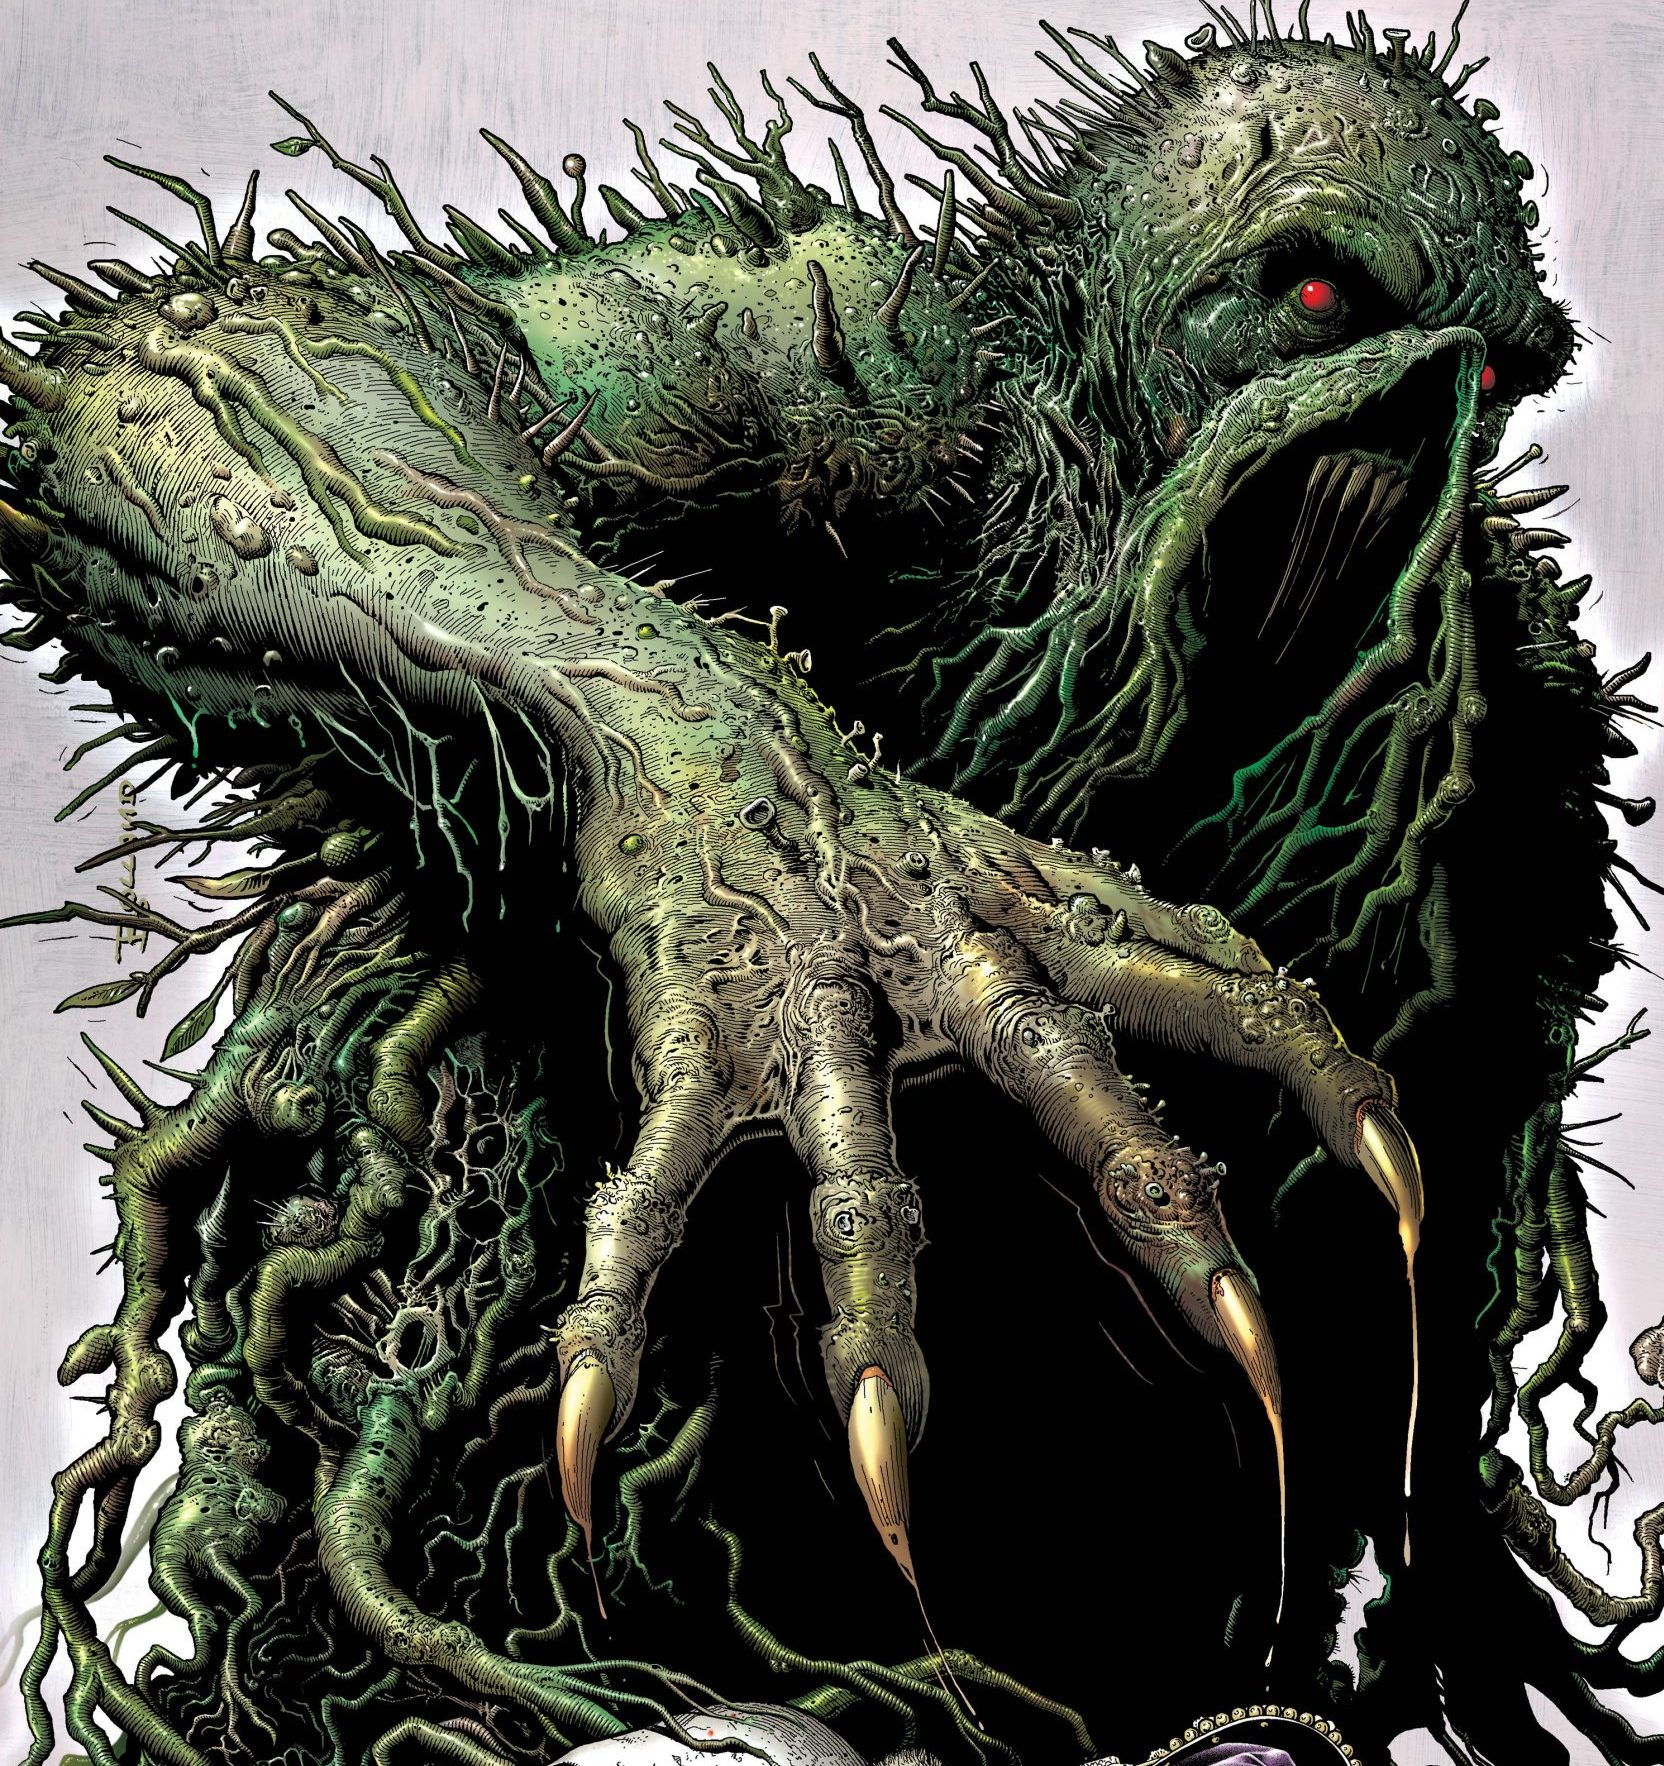 'The Swamp Thing' #5 review: War never changes